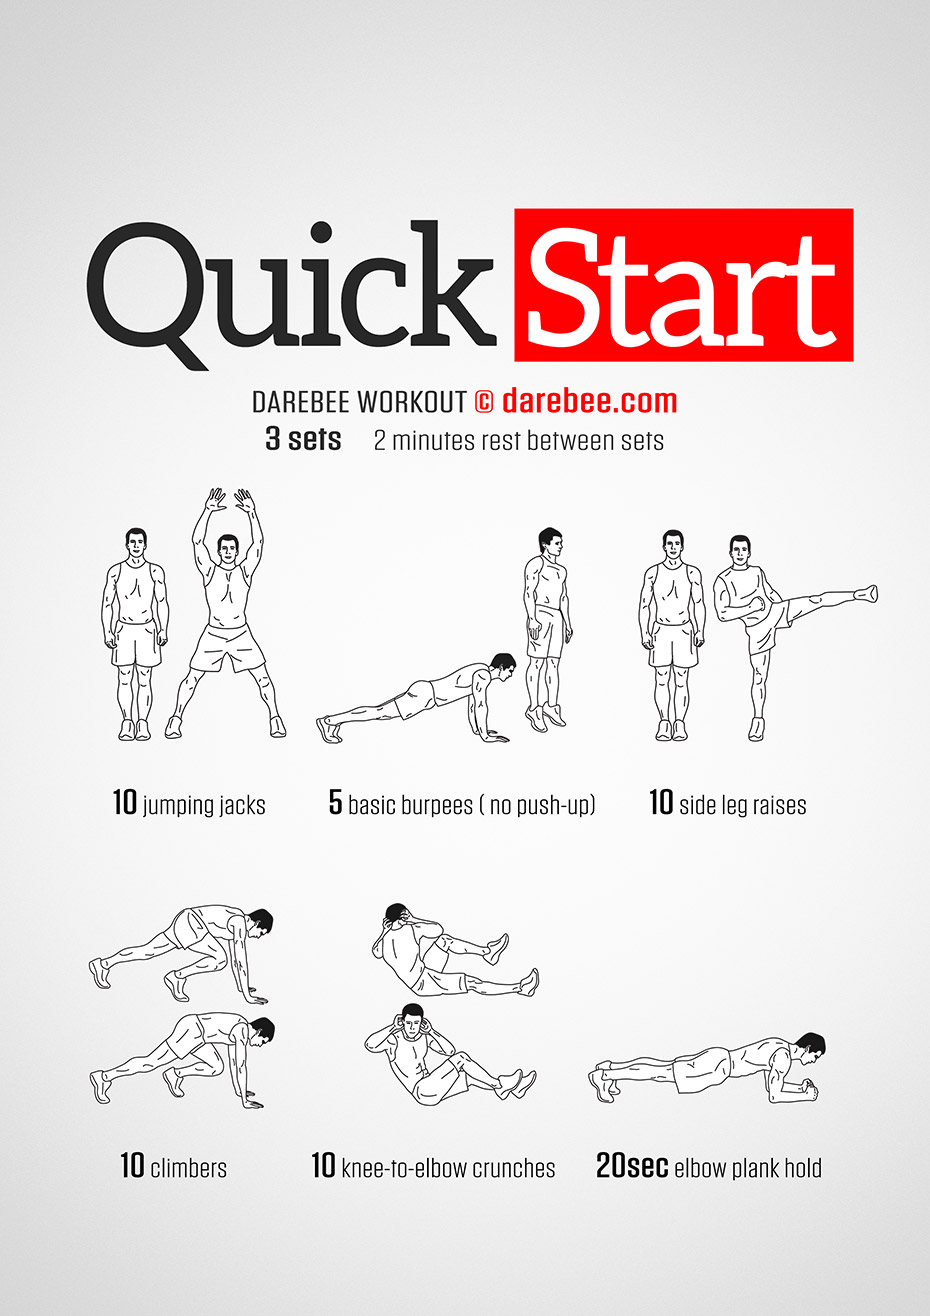 Quick Start Workout